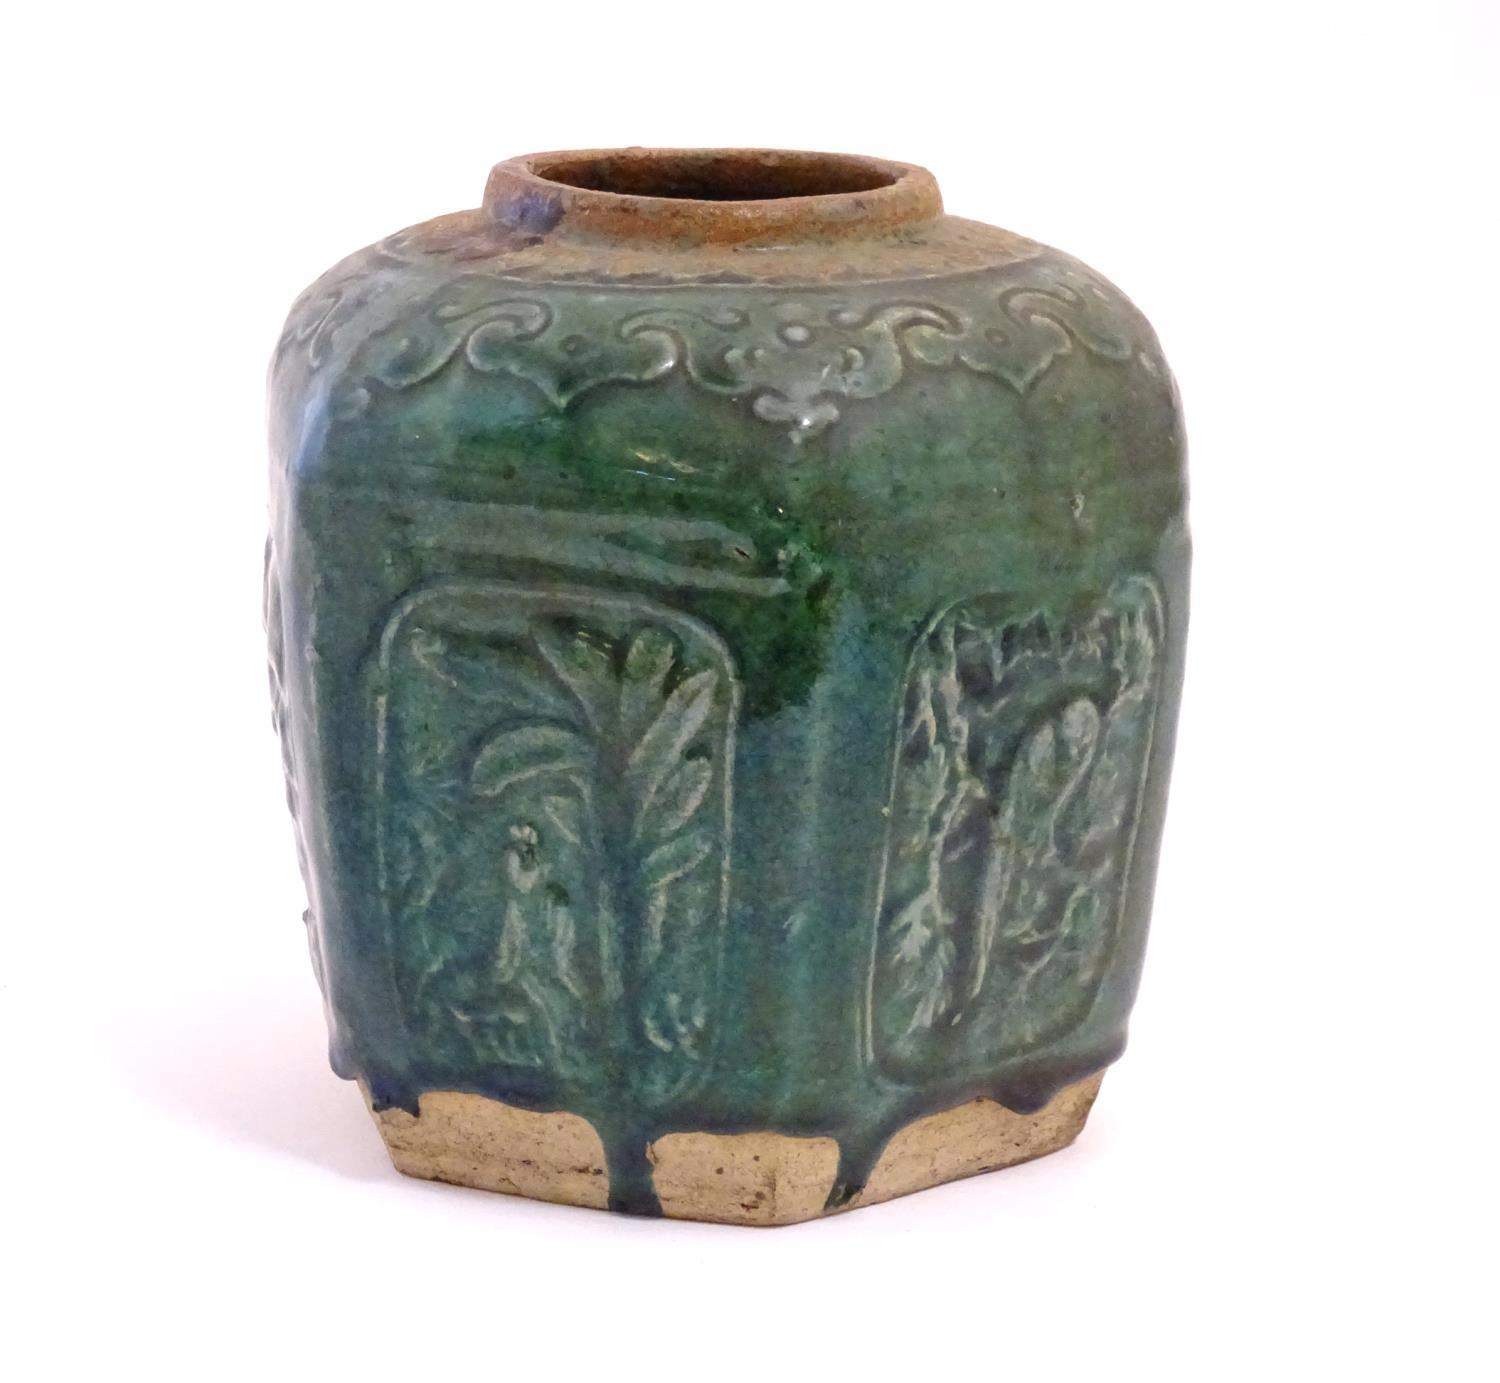 A Chinese hexagonal Shiwan ginger jar / vase with moulded floral, foliate, bird and script detail - Image 4 of 5